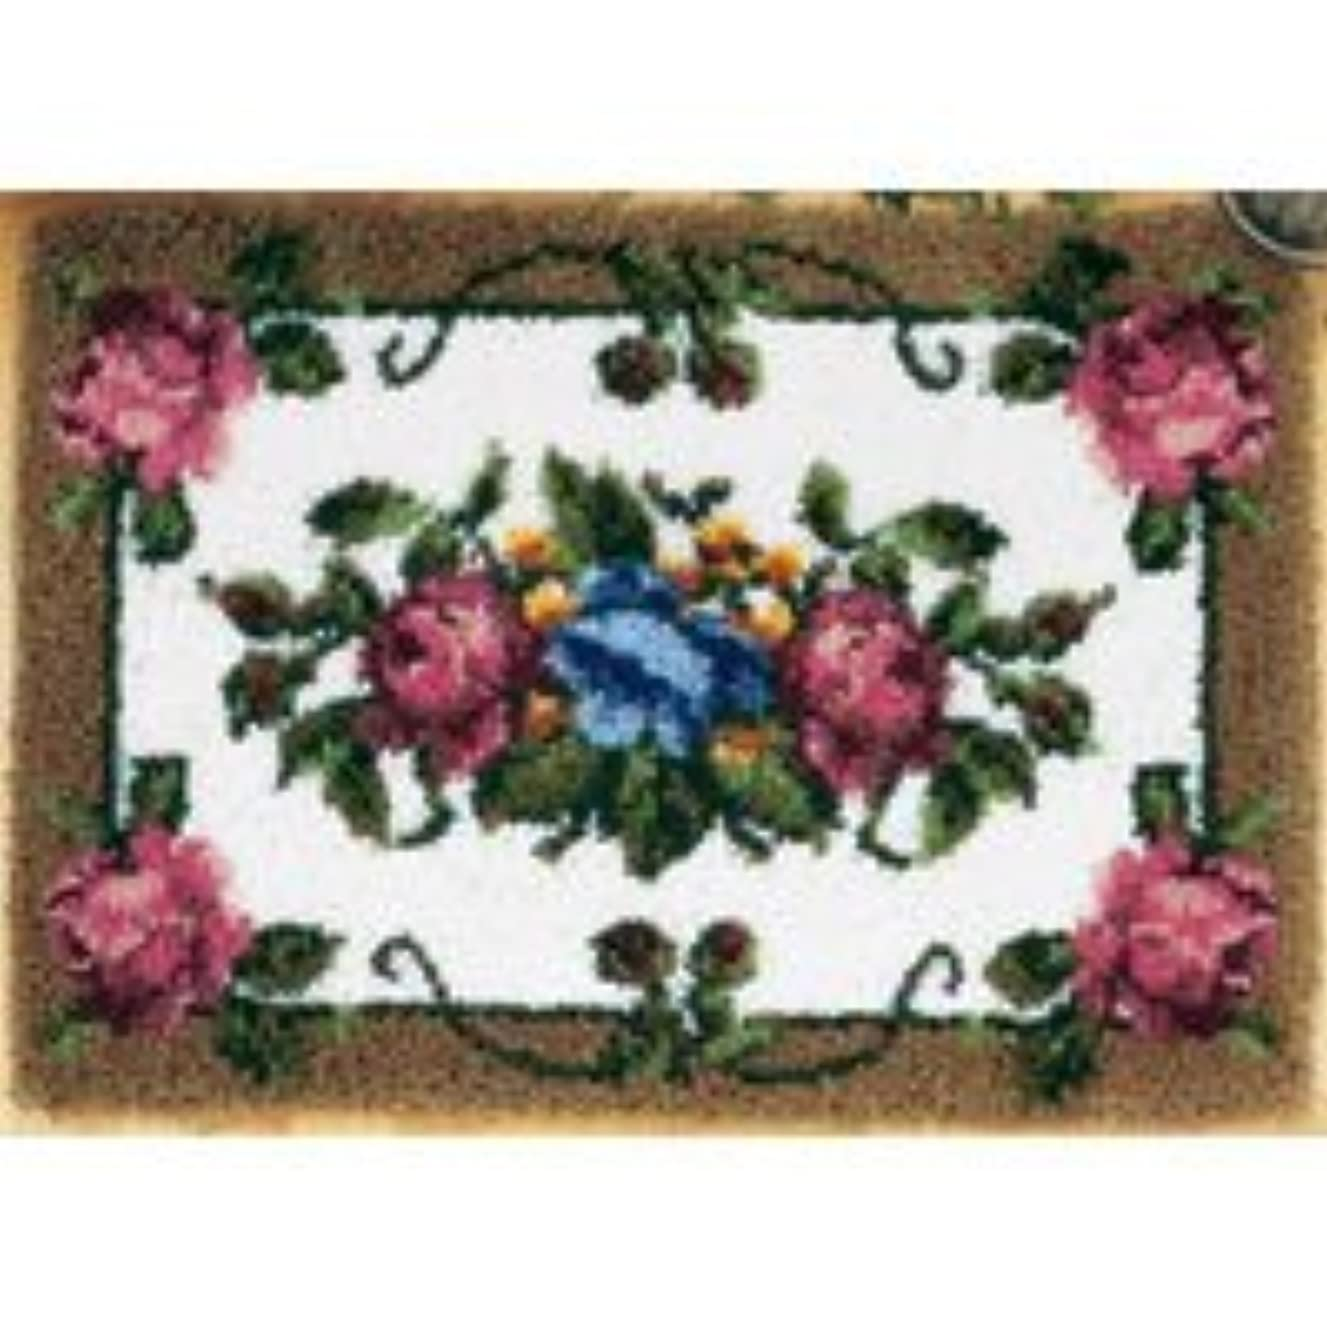 Elegant Roses Latch Hook Rug Kit - Latch Hook Kit